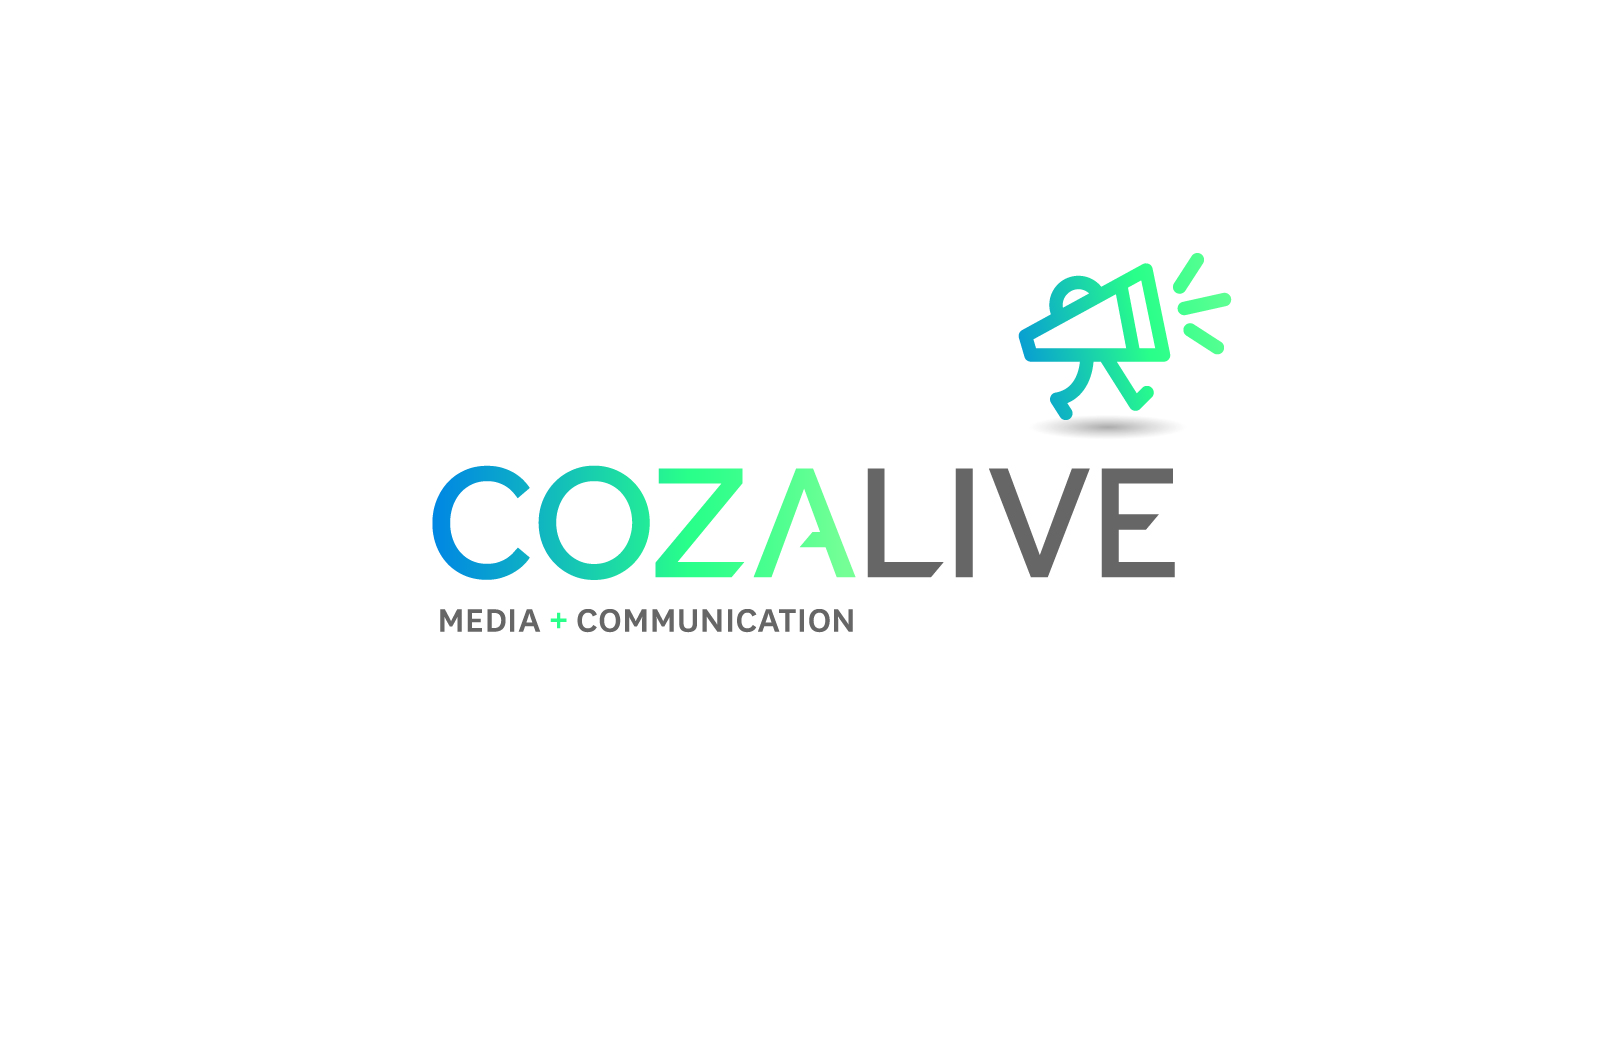 Cozalive Media + Communication